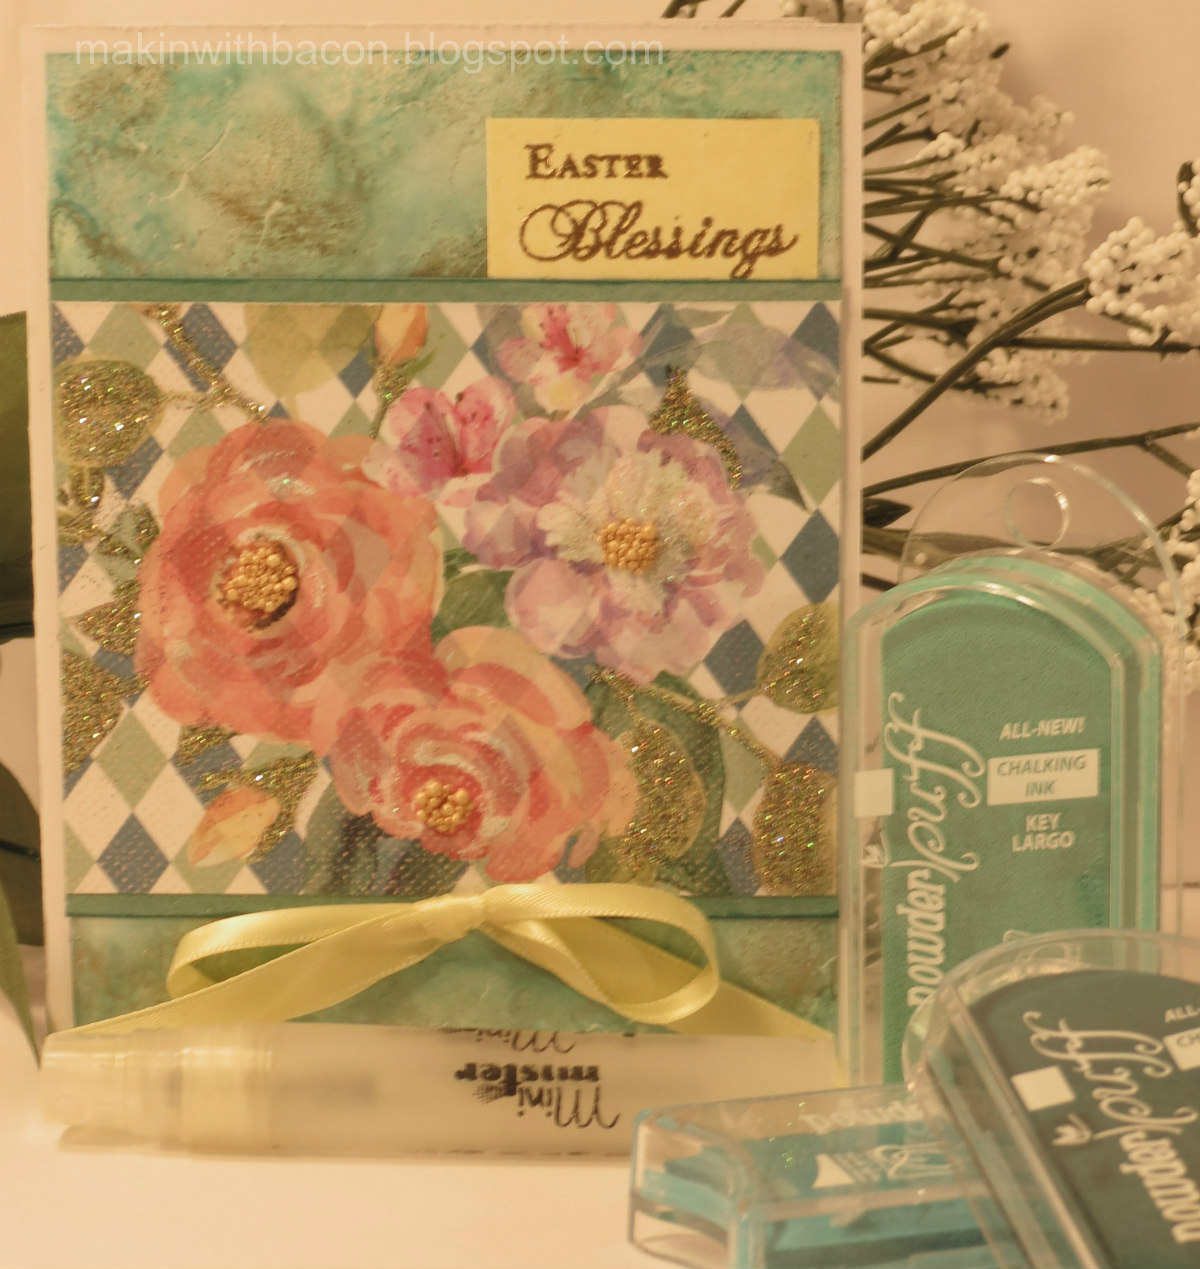 Blog Quick Quotes Easter Blessings With Rebecca